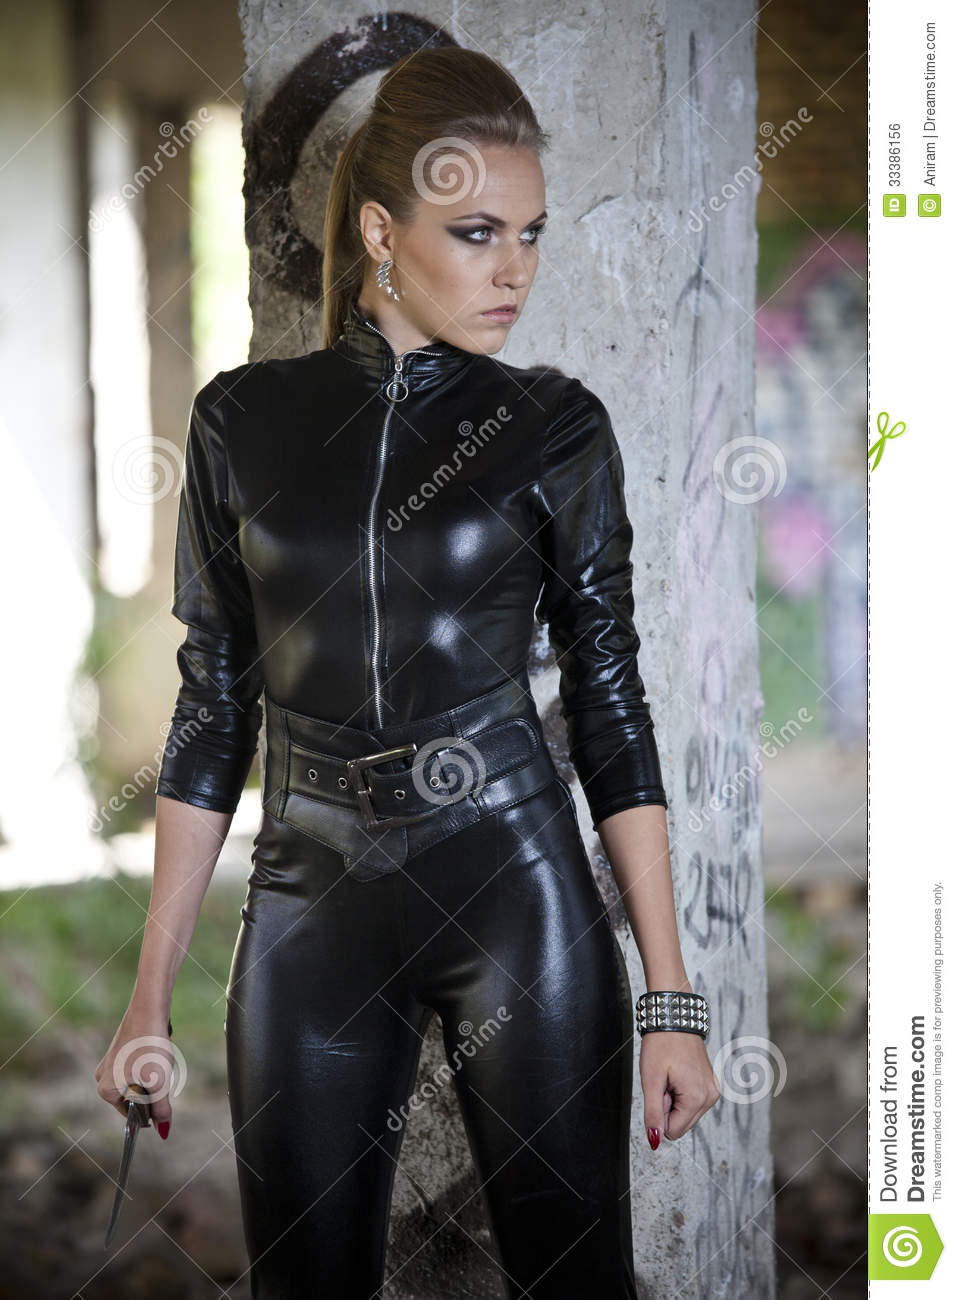 Woman In Leather Dress With Knife Royalty Free Stock Image - Image ...